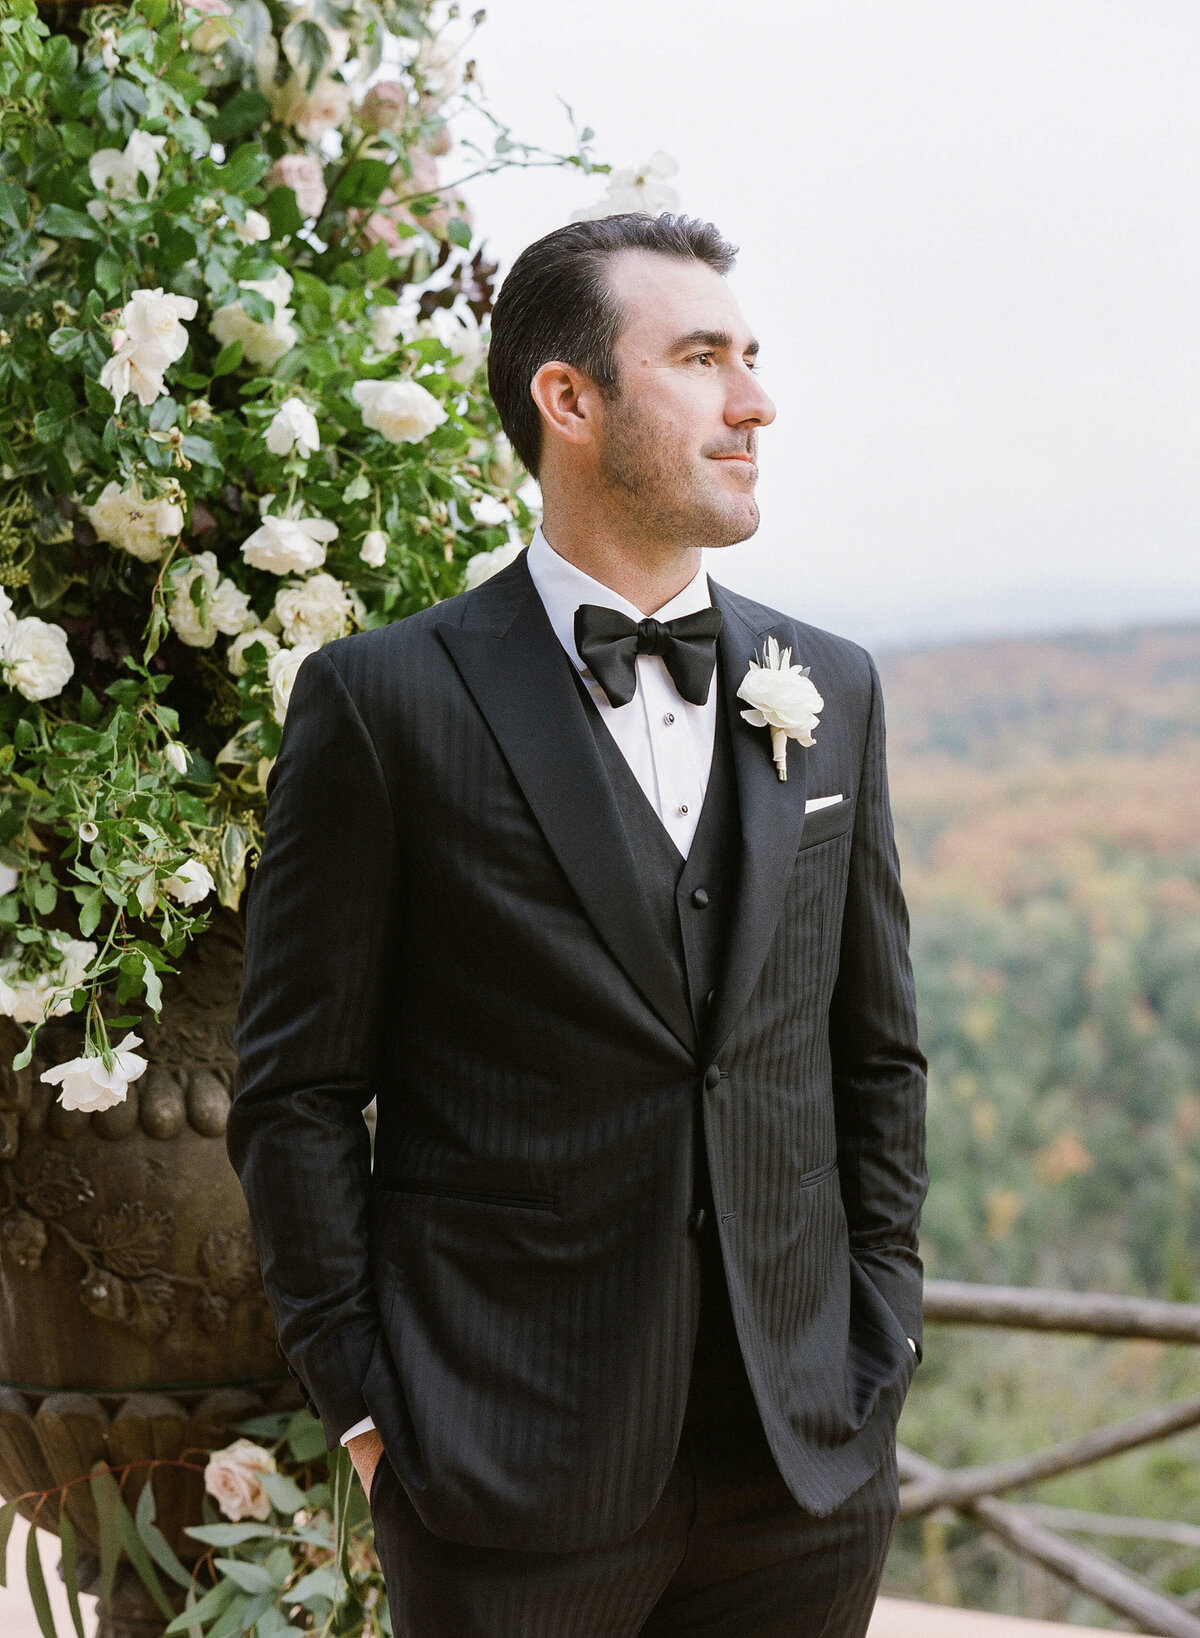 19-KTMerry-weddings-Justin-Verlander-Tuscany-ceremony